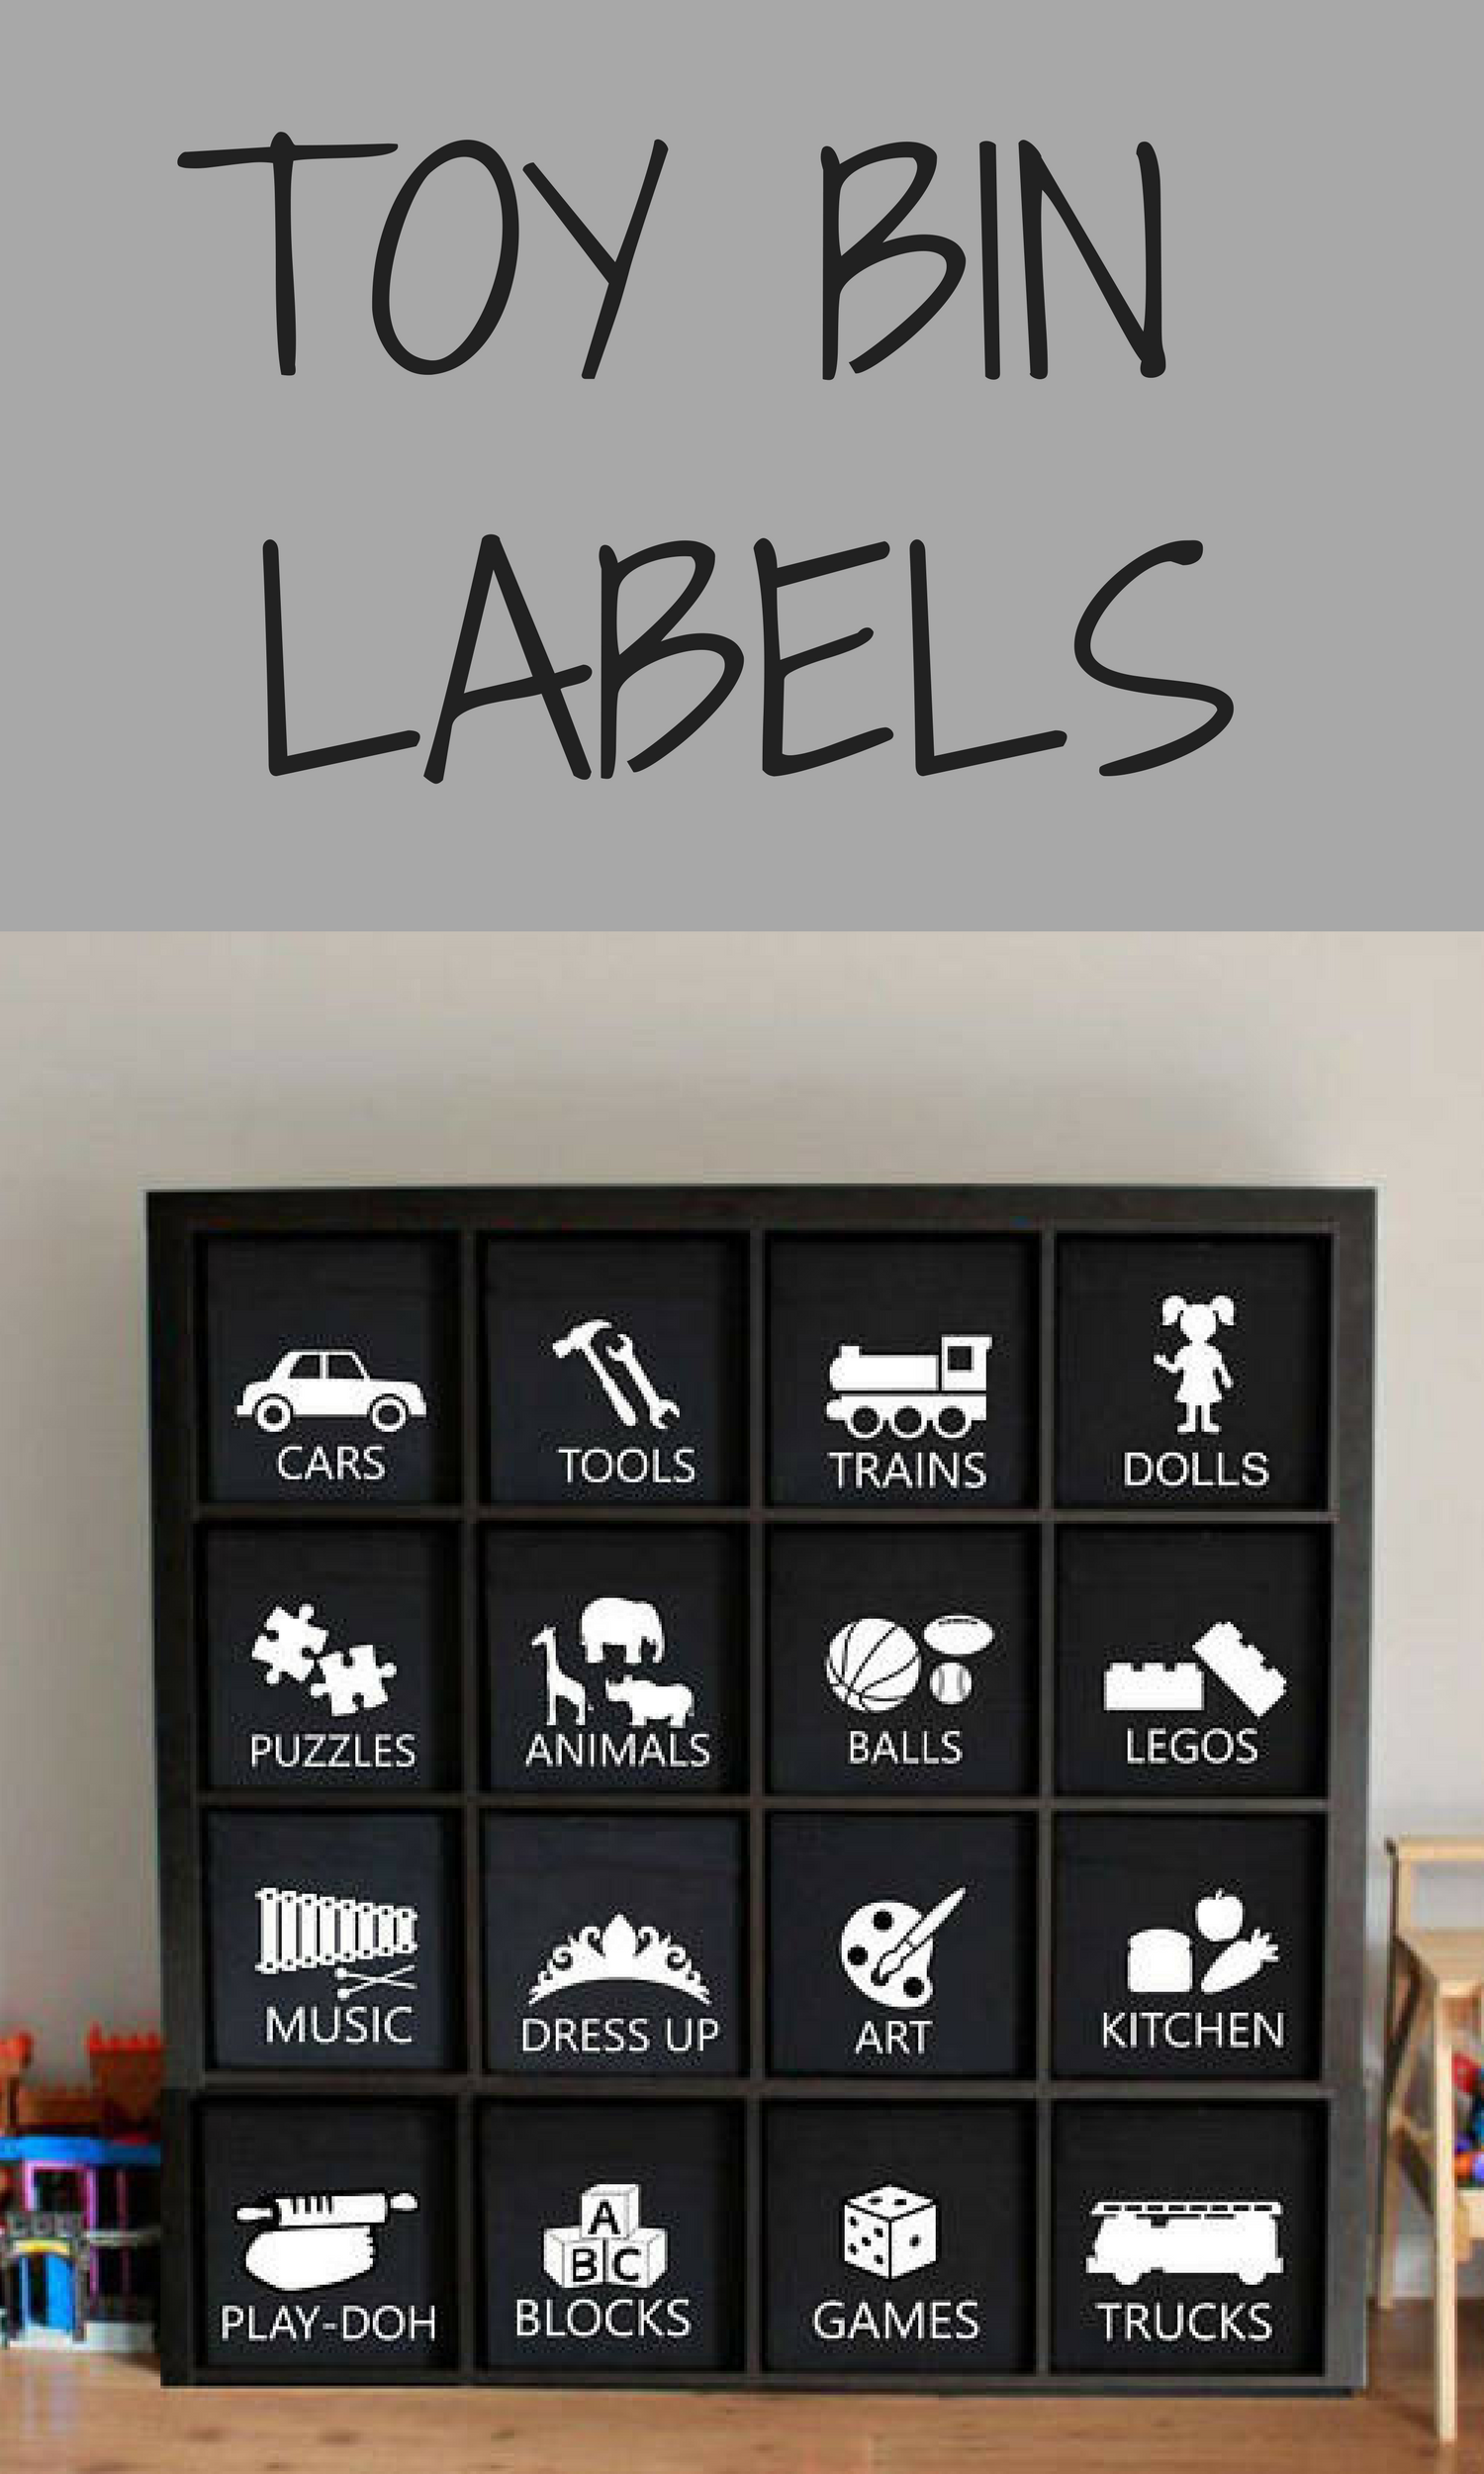 Car interior decoration toys  ONE Adhesive Vinyl Toy Bin Label  designs available Colors